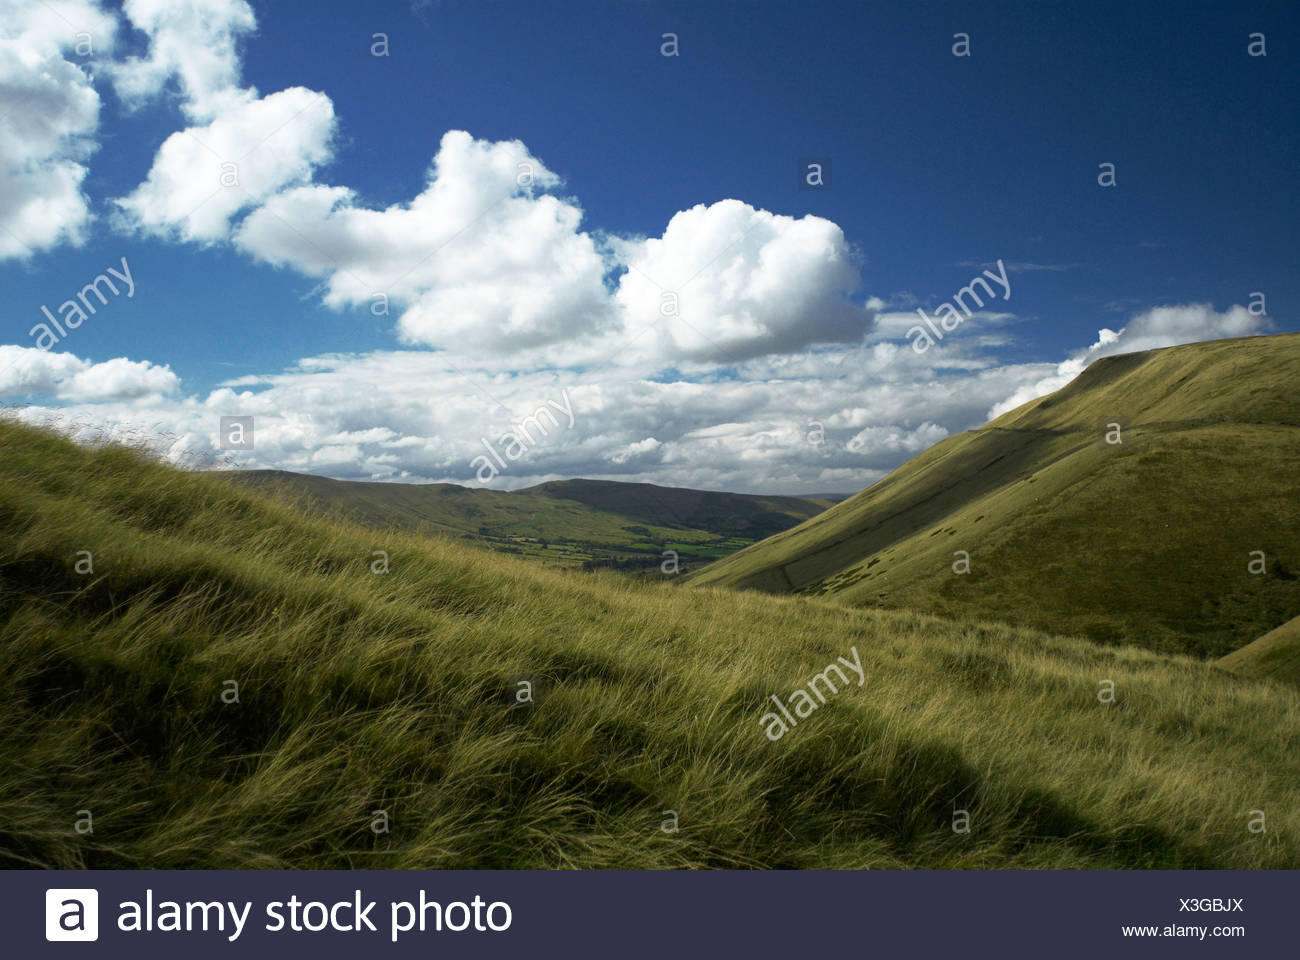 Upland landscape under blue sky and clouds Stock Photo